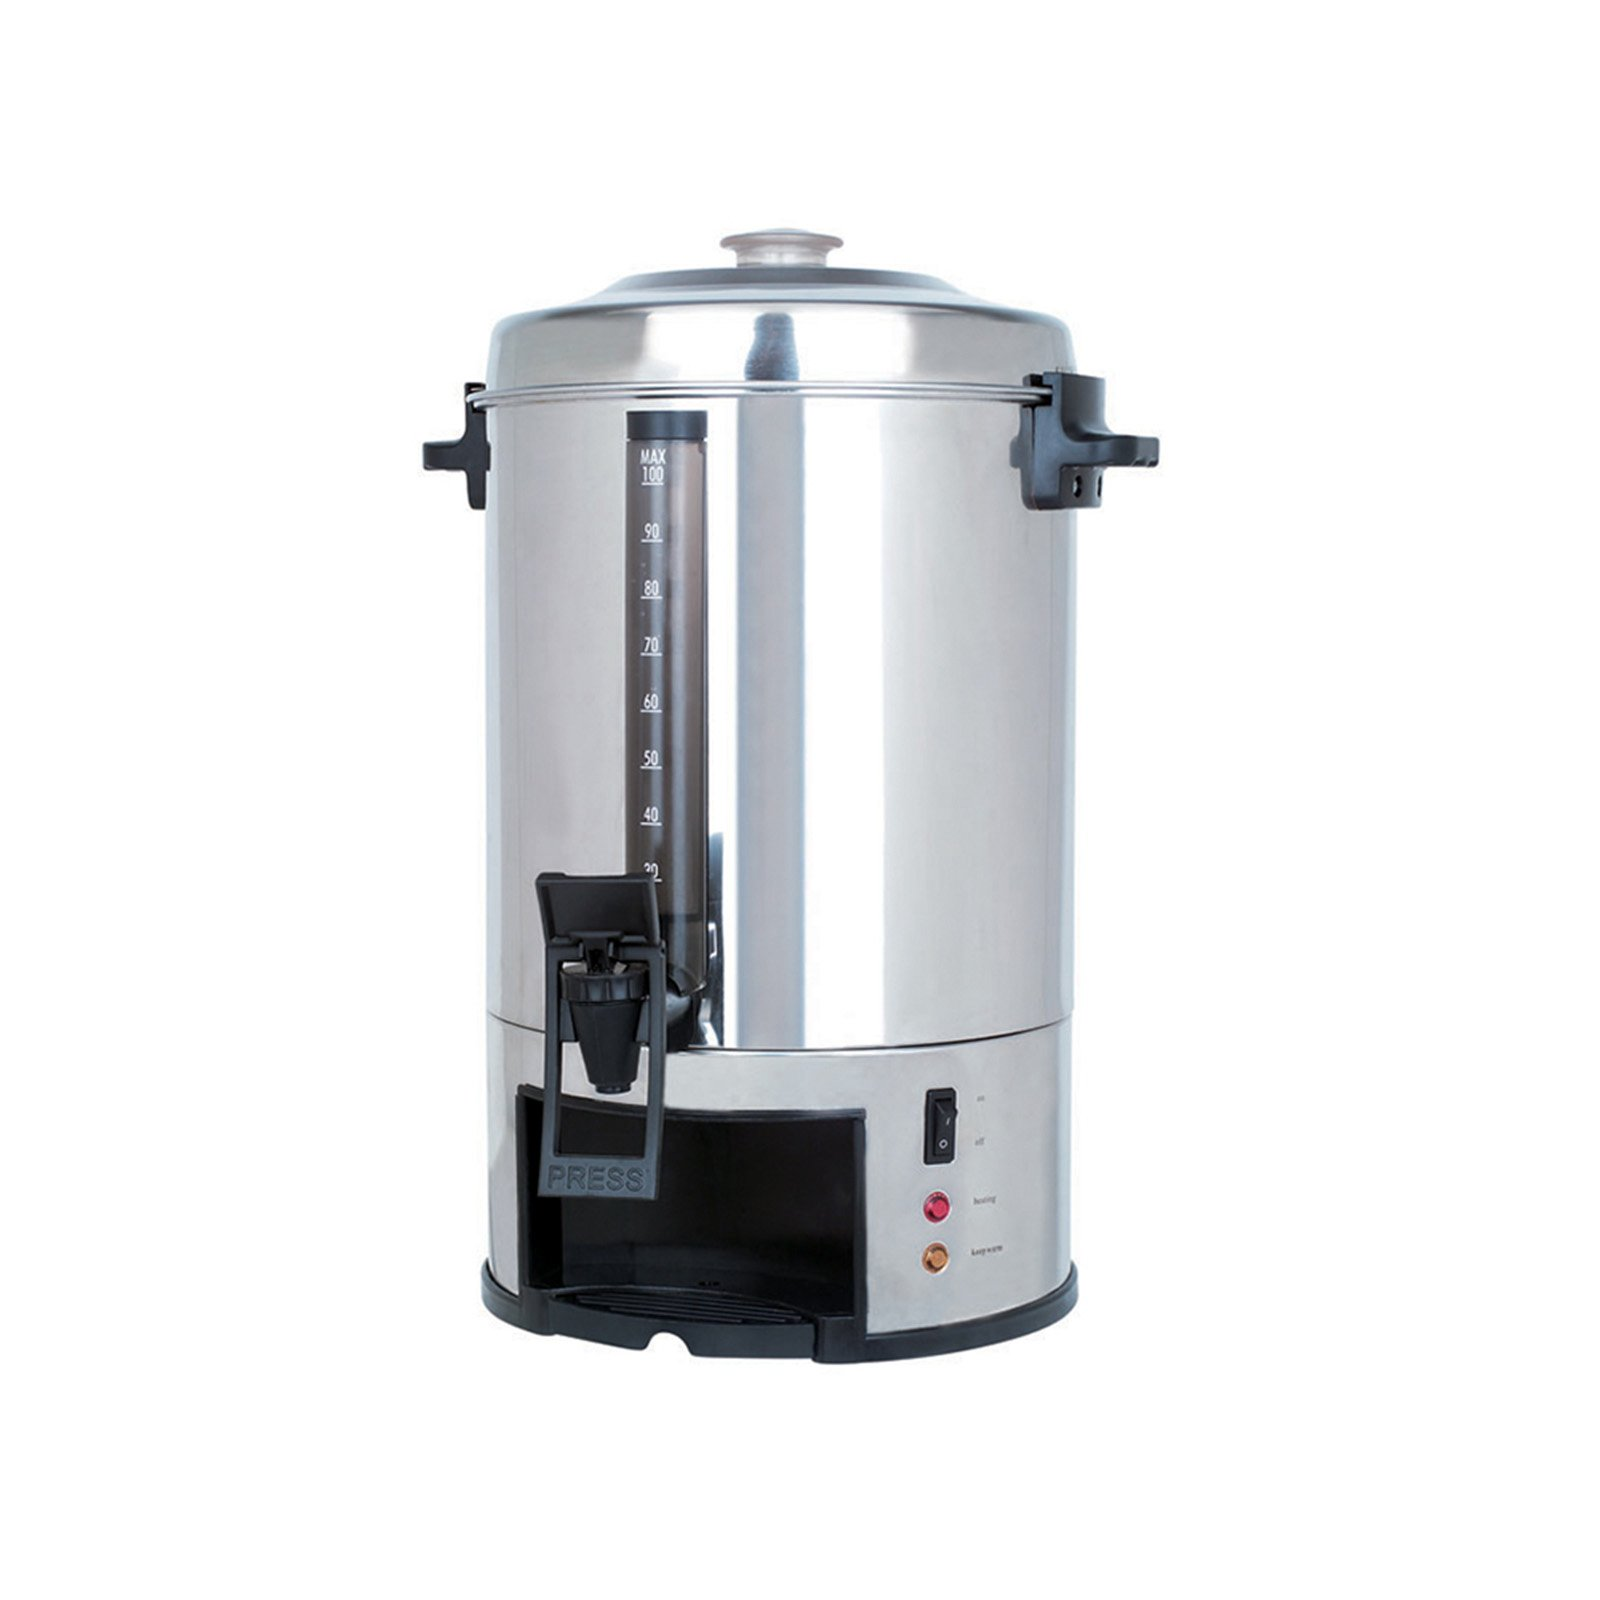 Better Chef 100 Cup Stainless Steel Coffee Urn by Better Chef (Image #1)